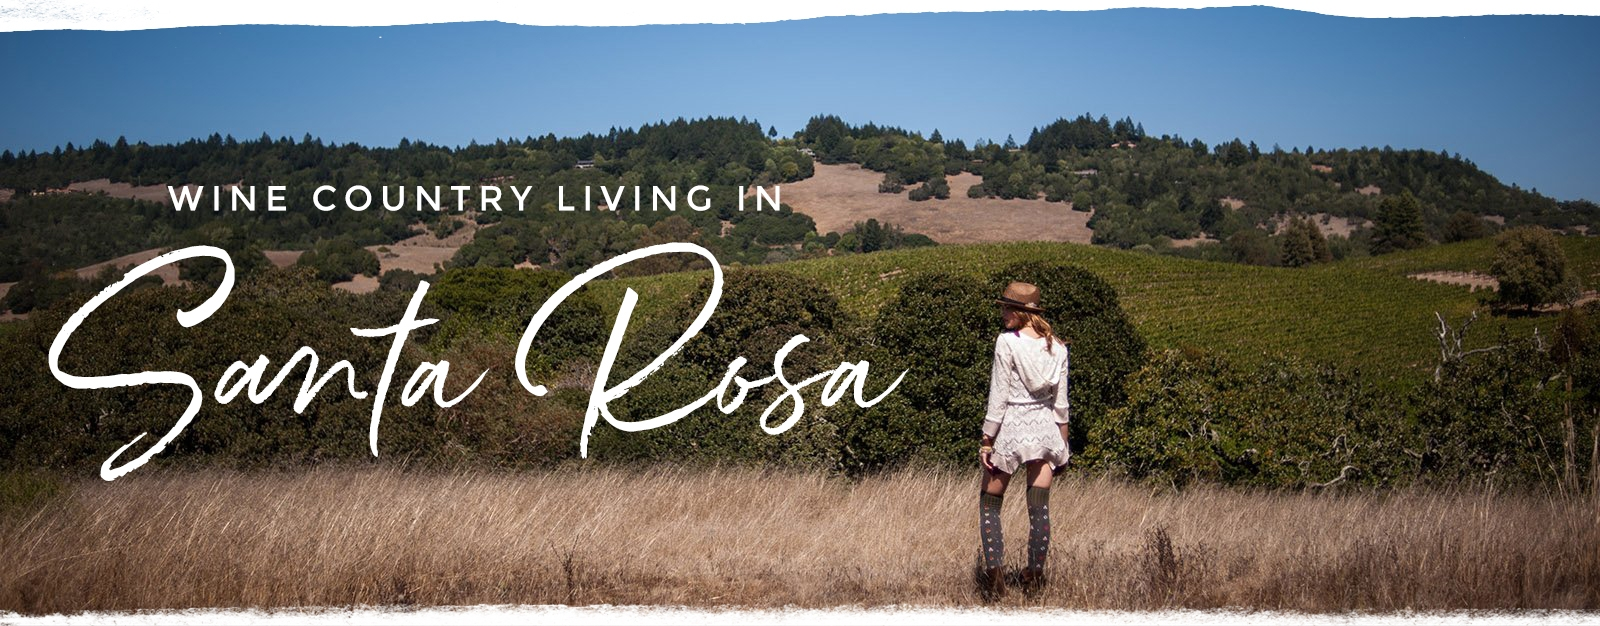 wine-country-living-santa-rosa